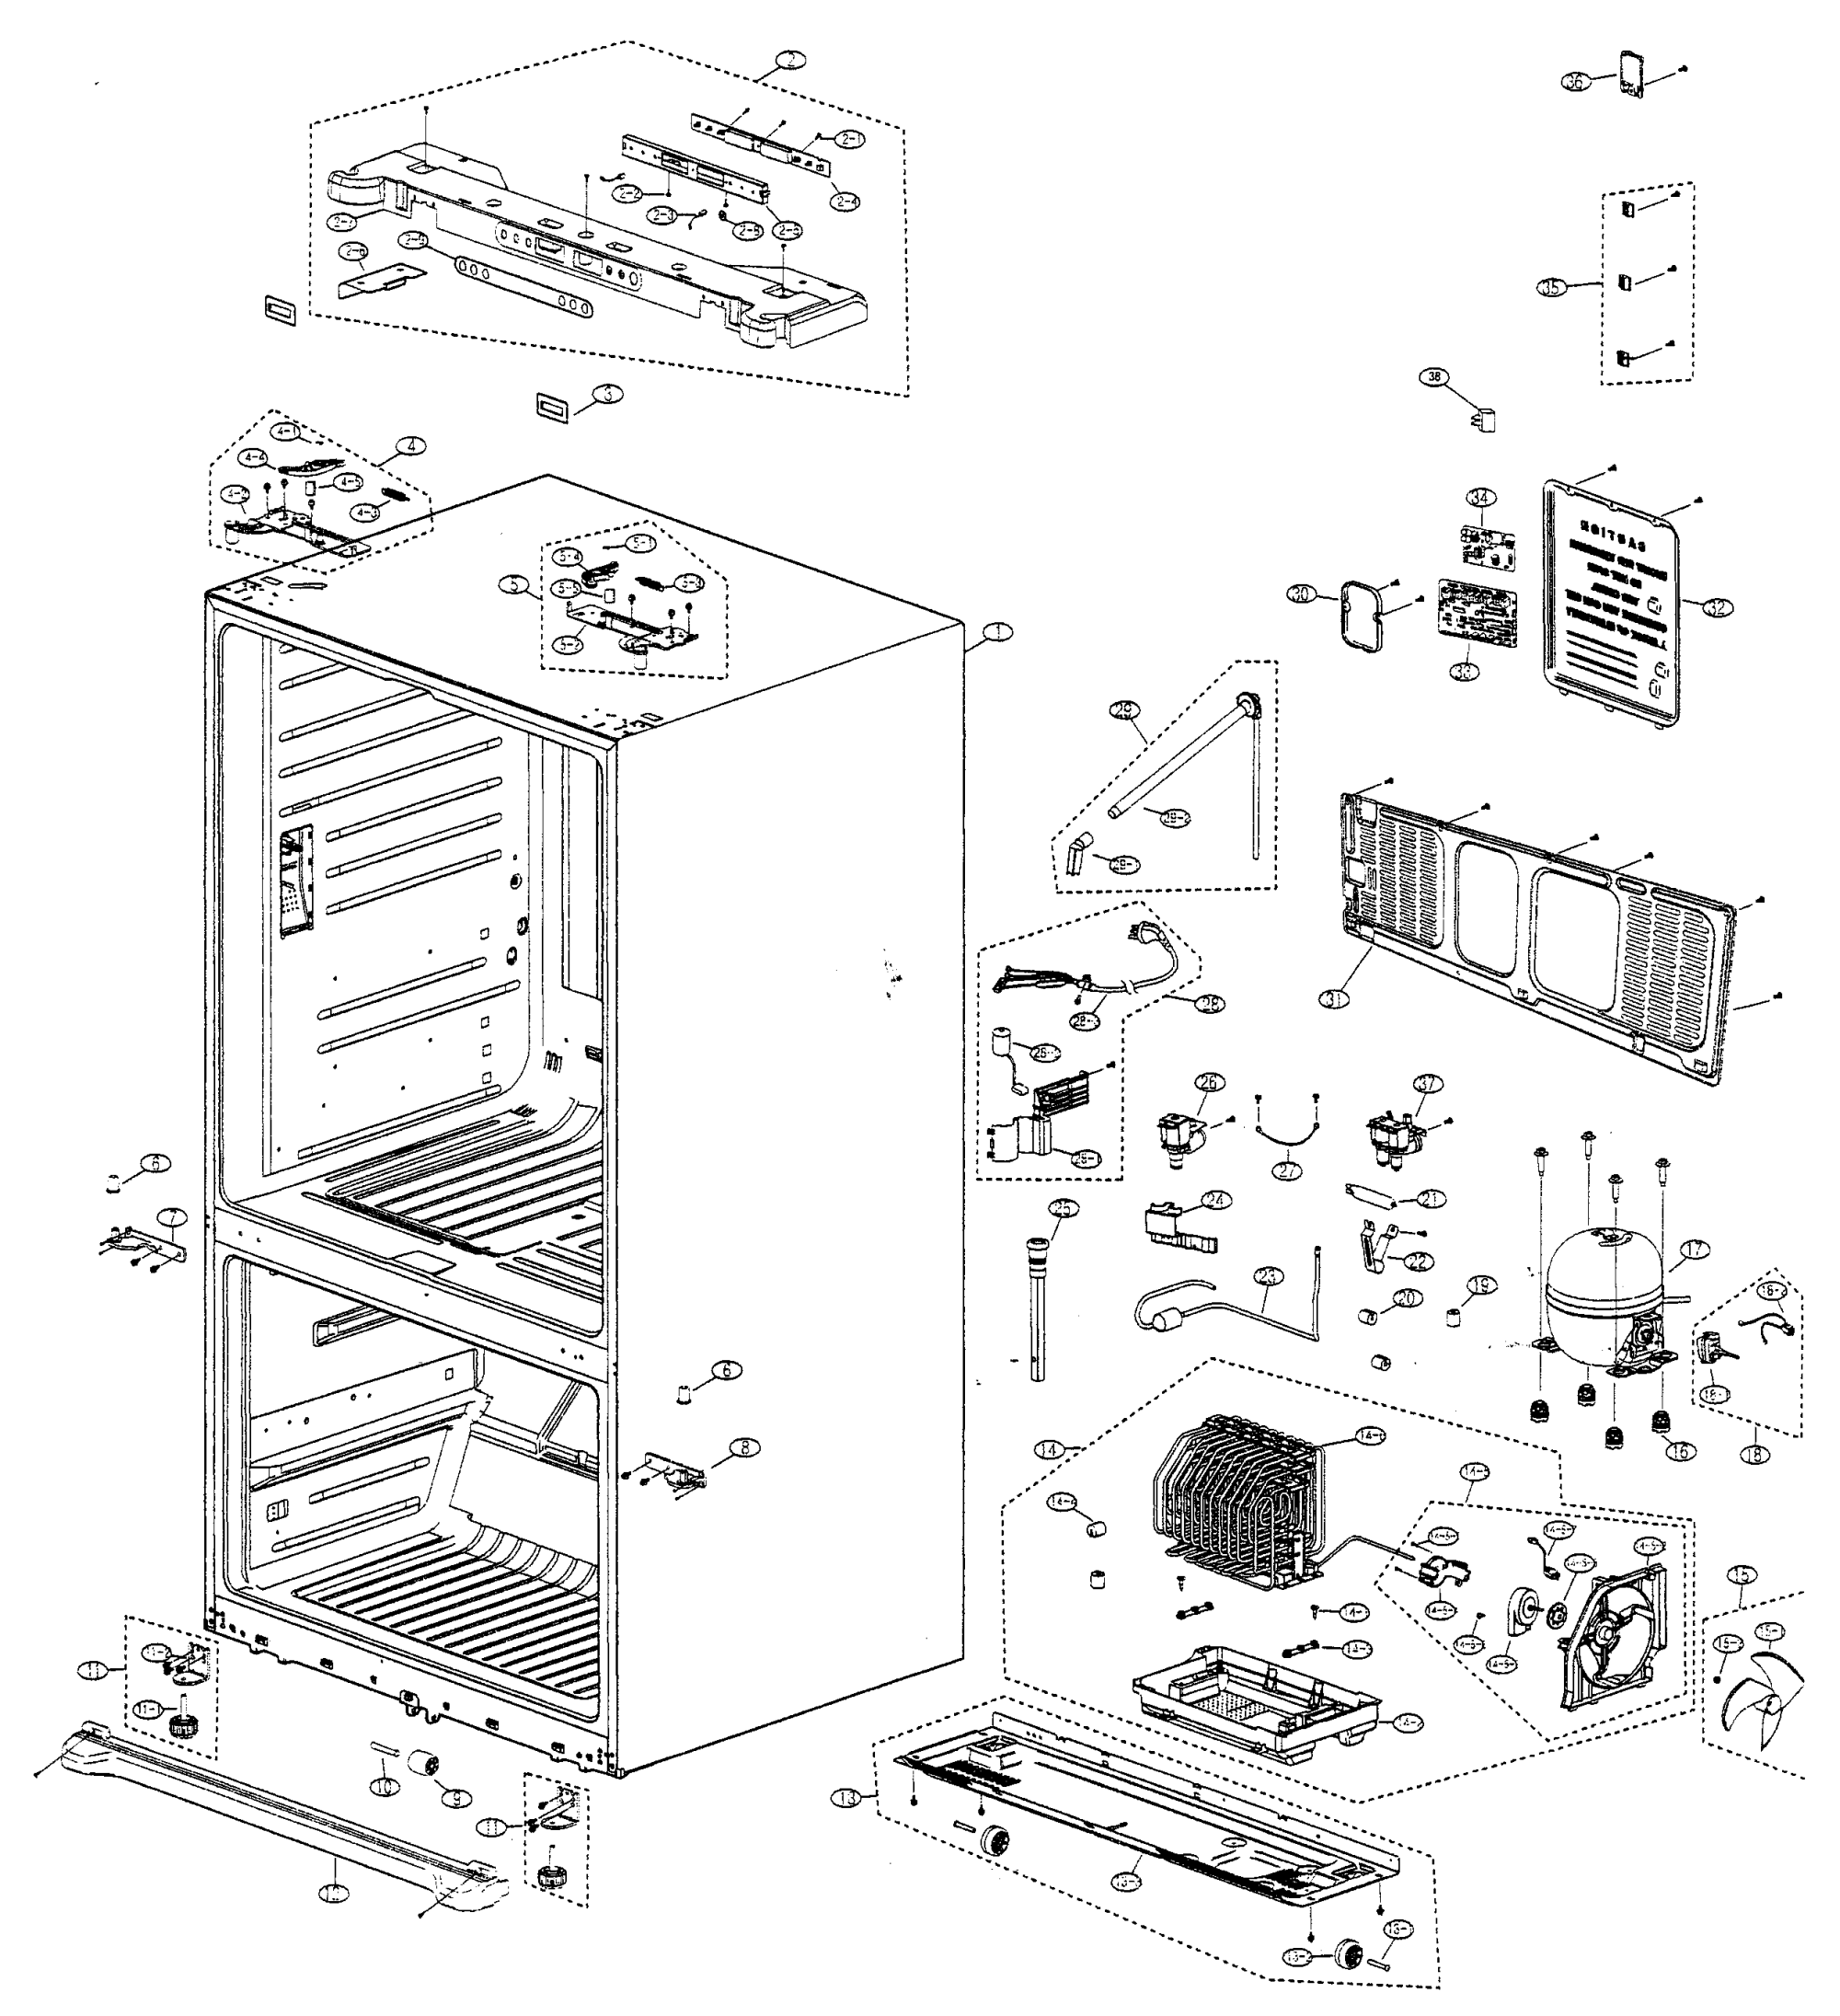 hight resolution of samsung model rf266abpn xaa bottom mount refrigerator genuine parts samsung dryer parts diagram samsung refrigerator diagram